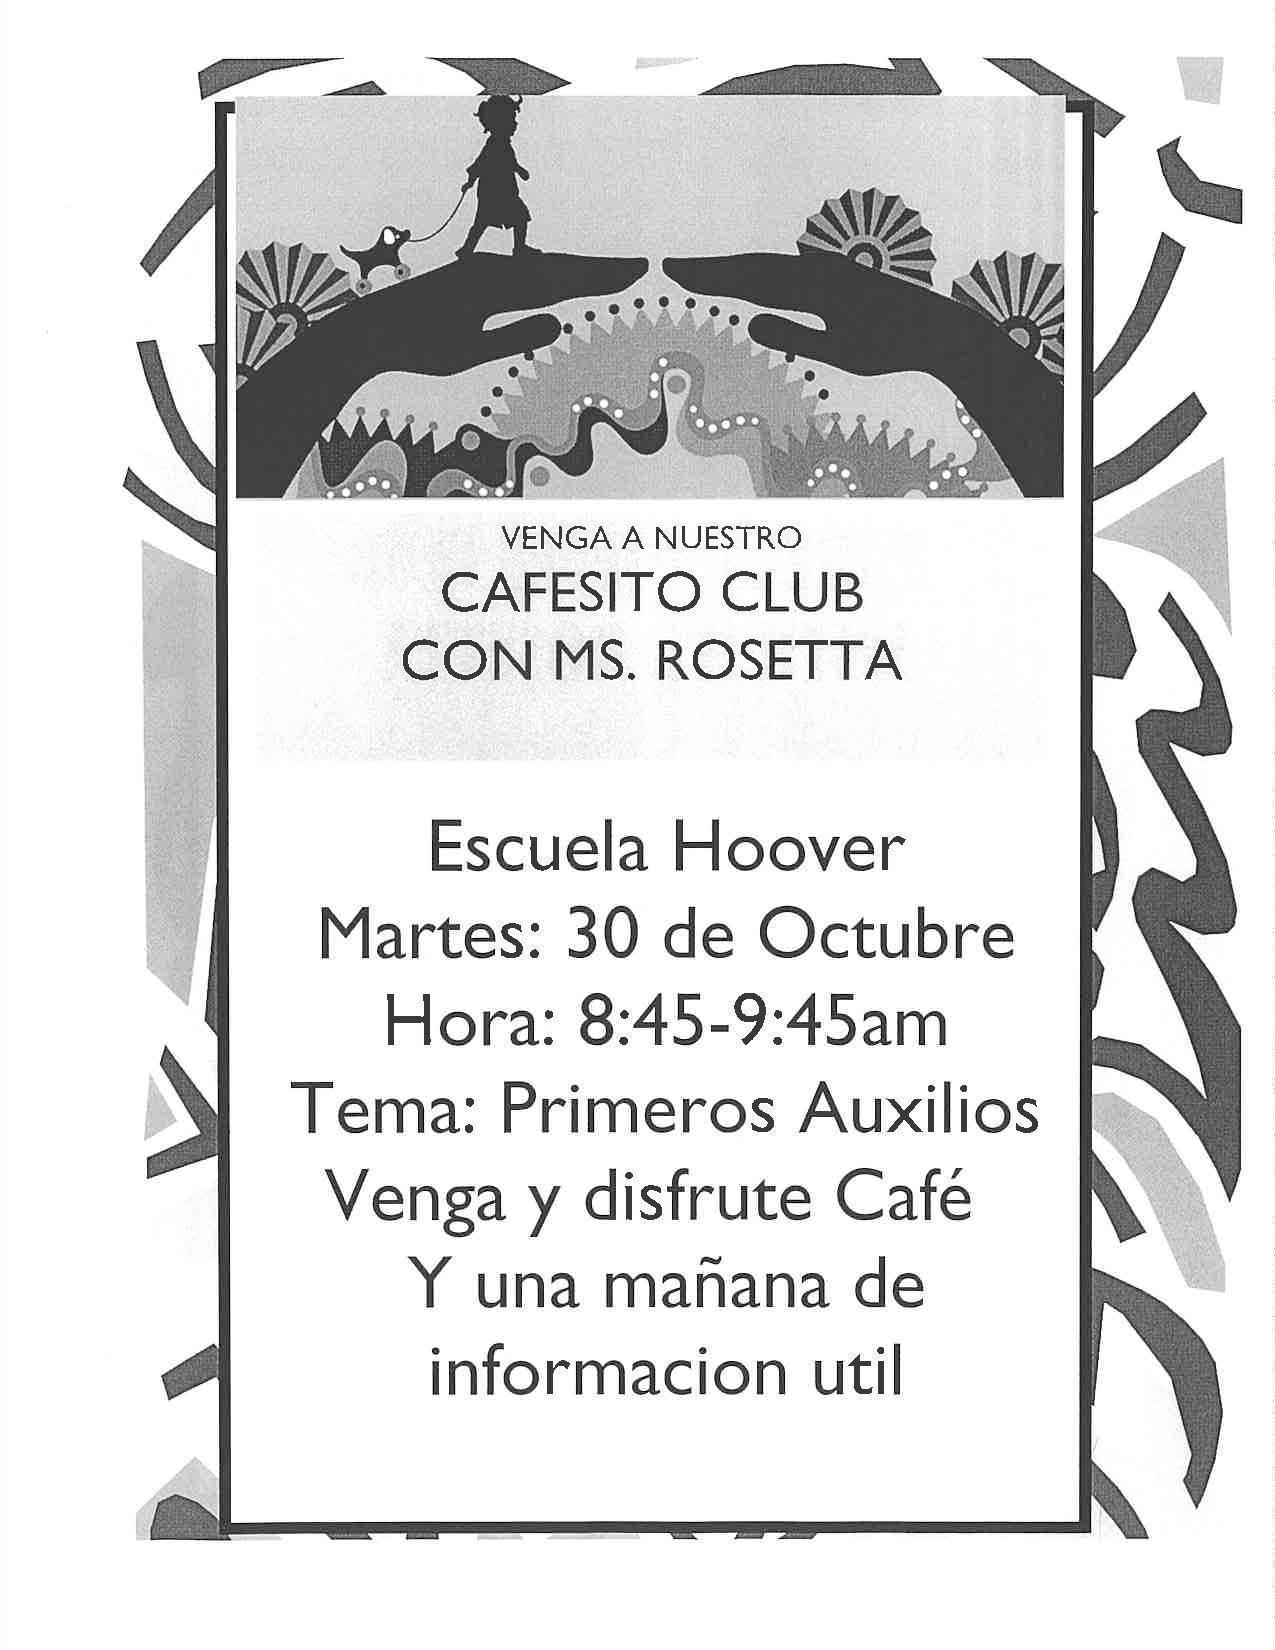 Cafesito Club con Ms. Rosetta el 30 de octobre a los 8:45am